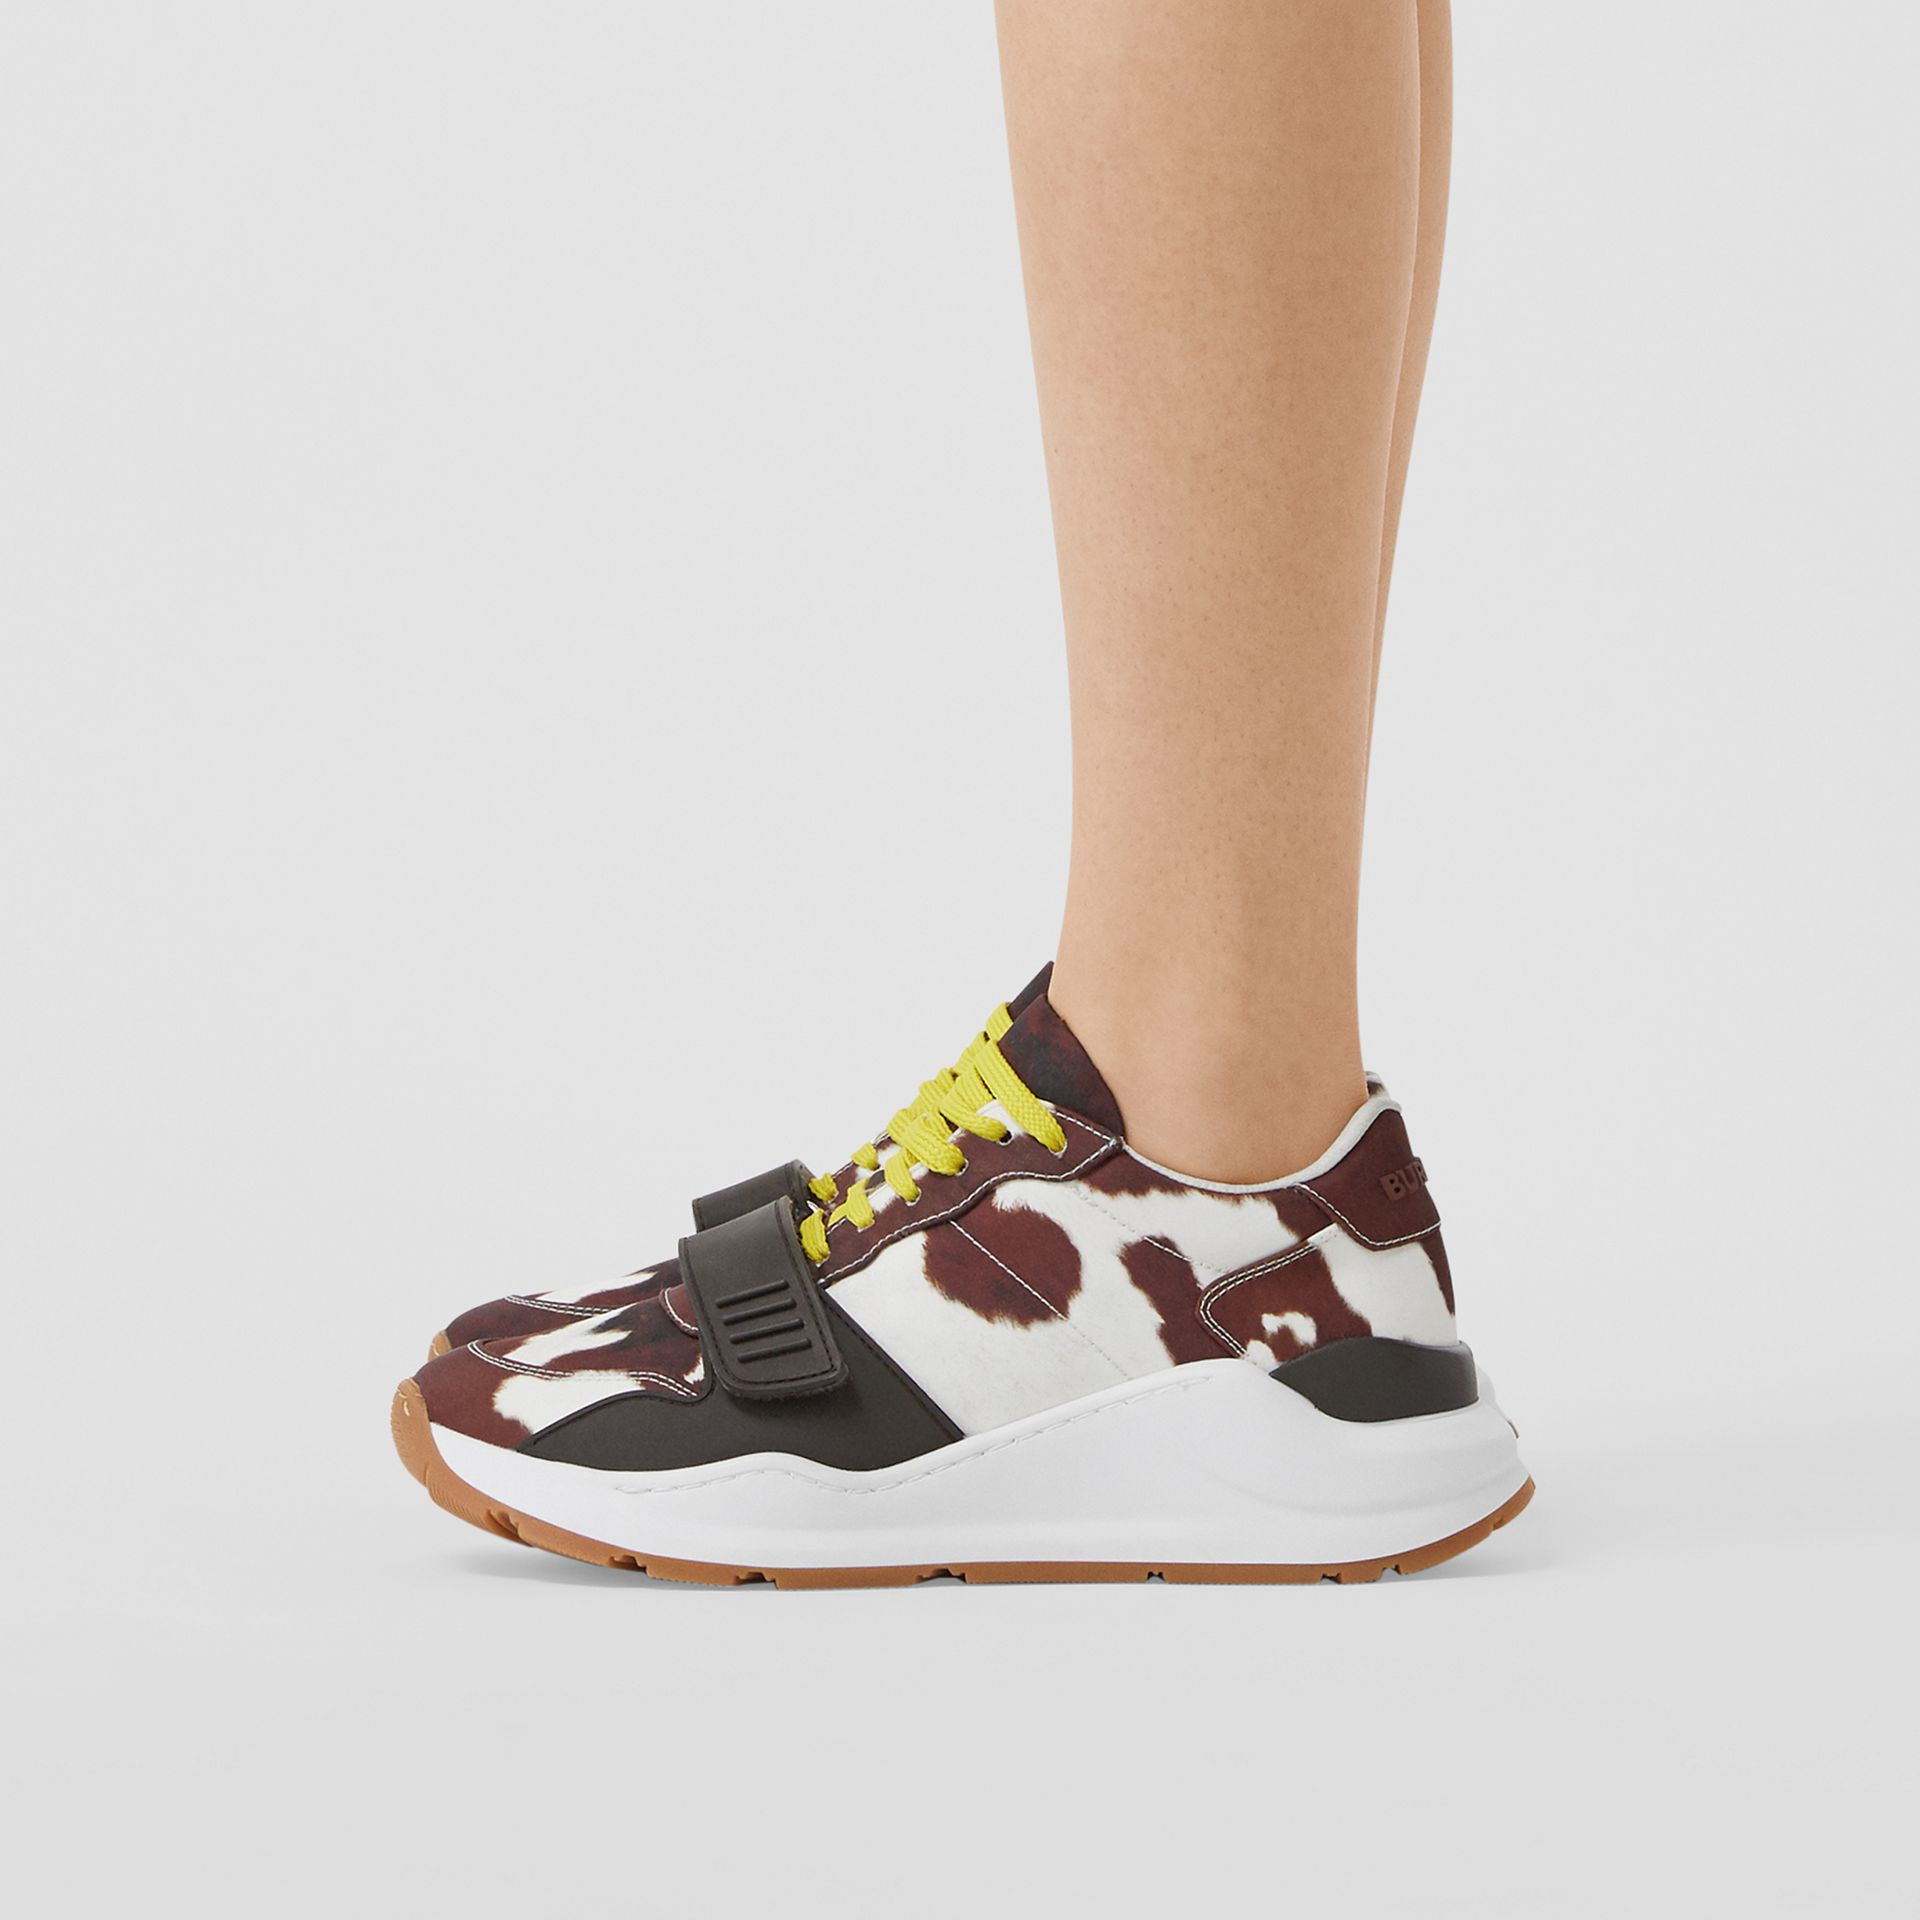 Cow Print Nylon Sneakers in Brown - Women | Burberry - gallery image 2